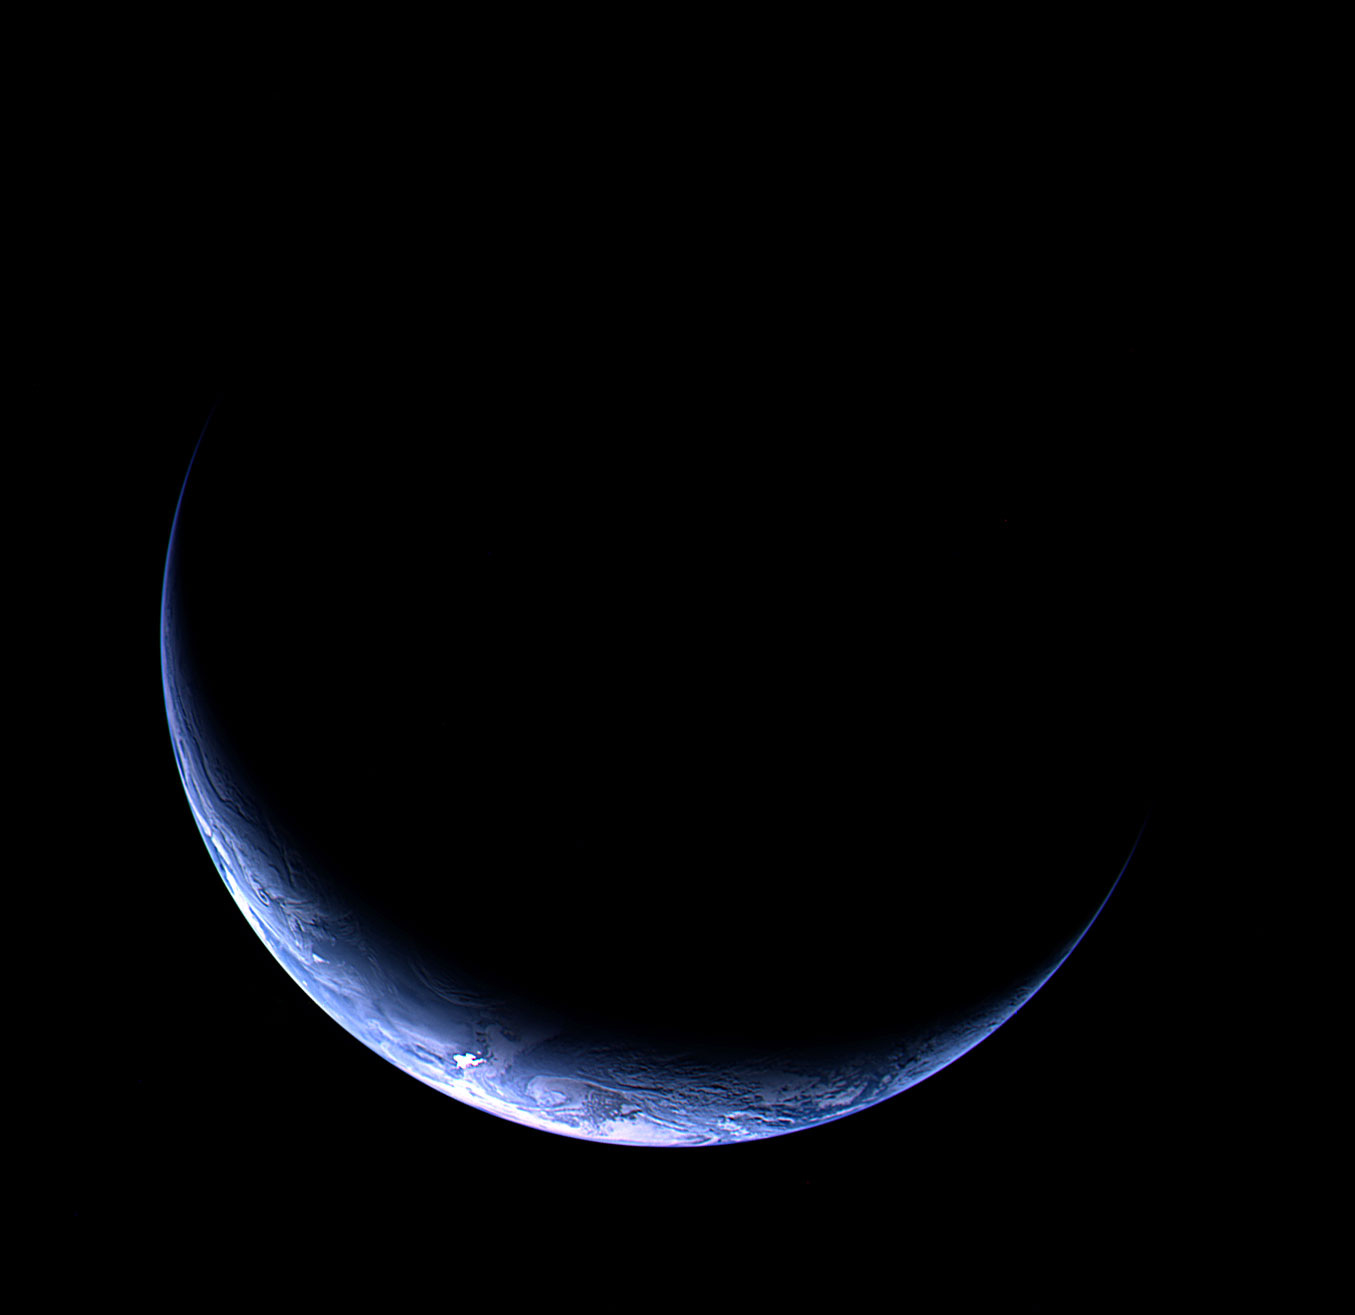 Image of Earth acquired with Rosetta's narrow-angle camera from a distance of 633 000 kilometers (393,300 miles) on Nov. 12